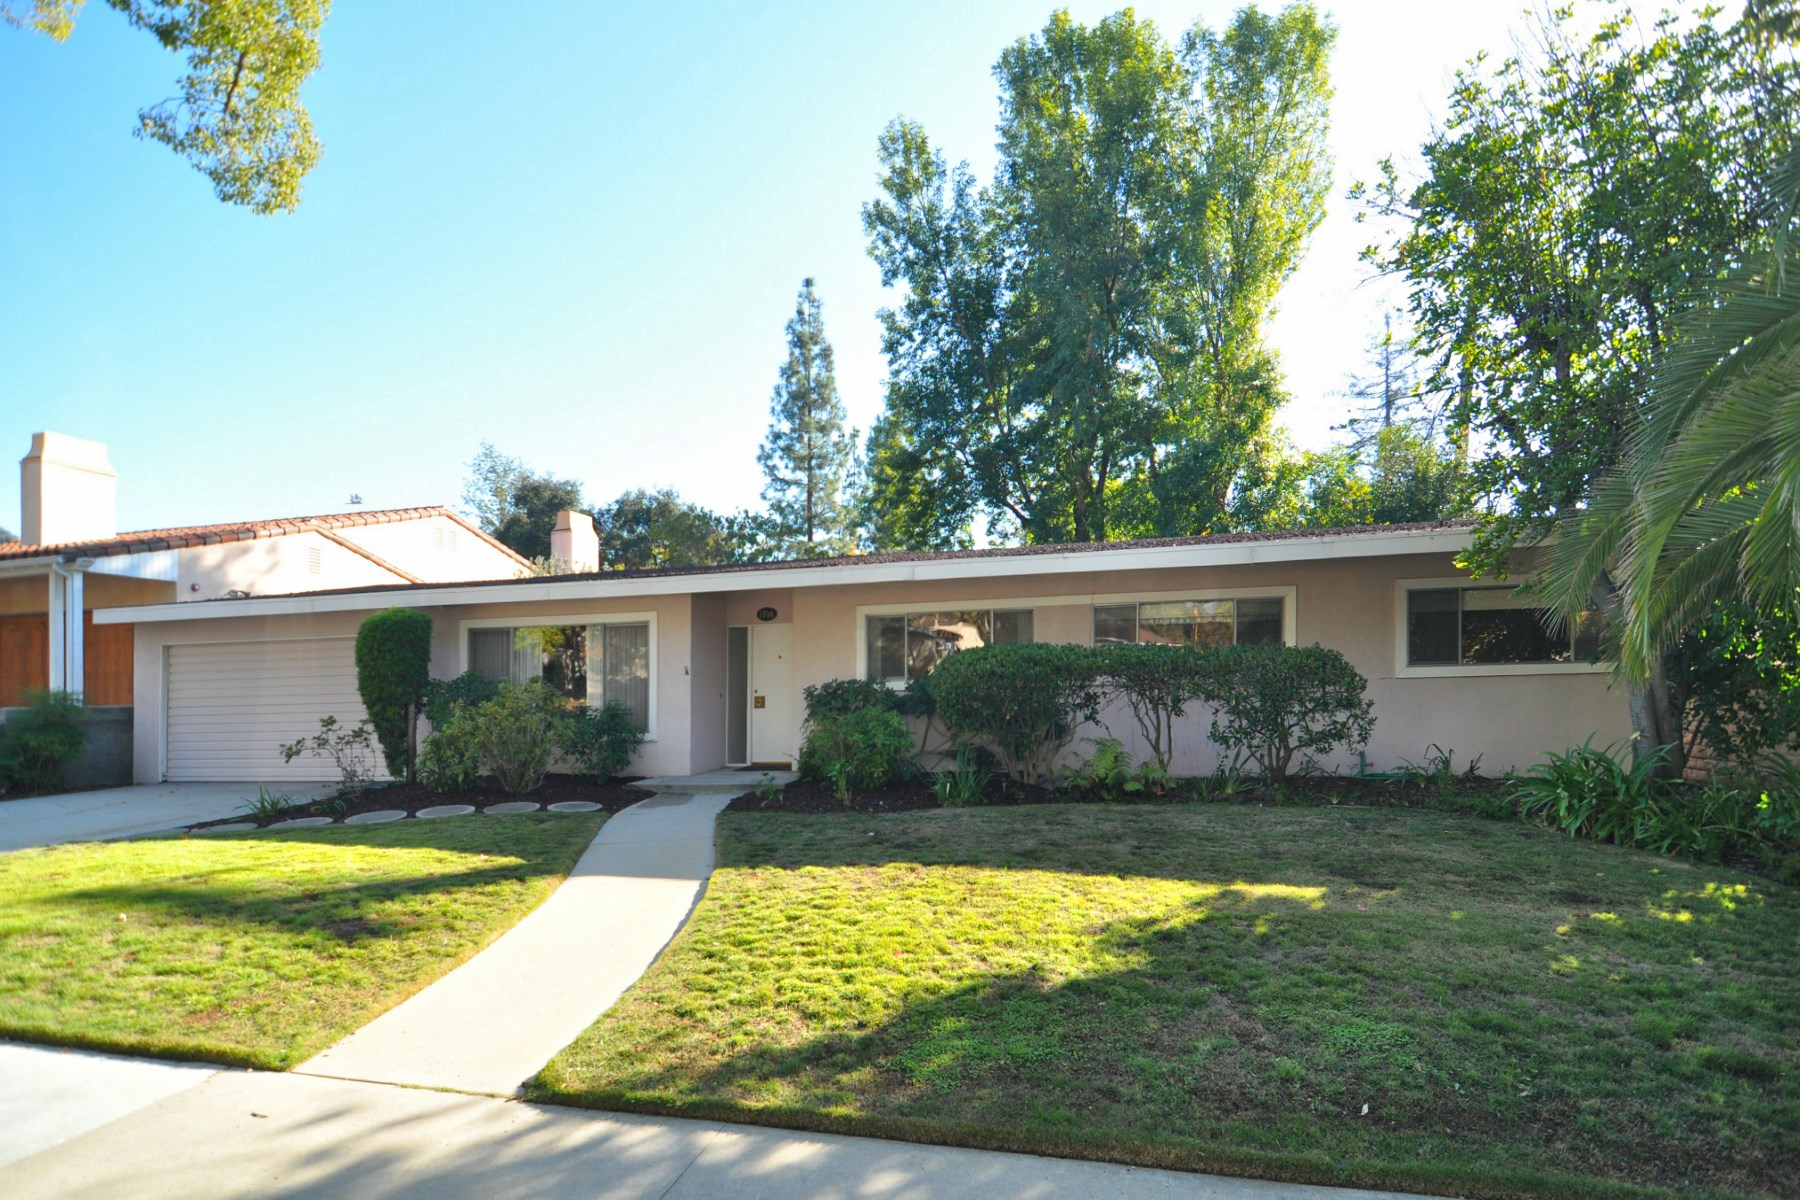 sales property at Verdugo Woodlands Residence in Glendale